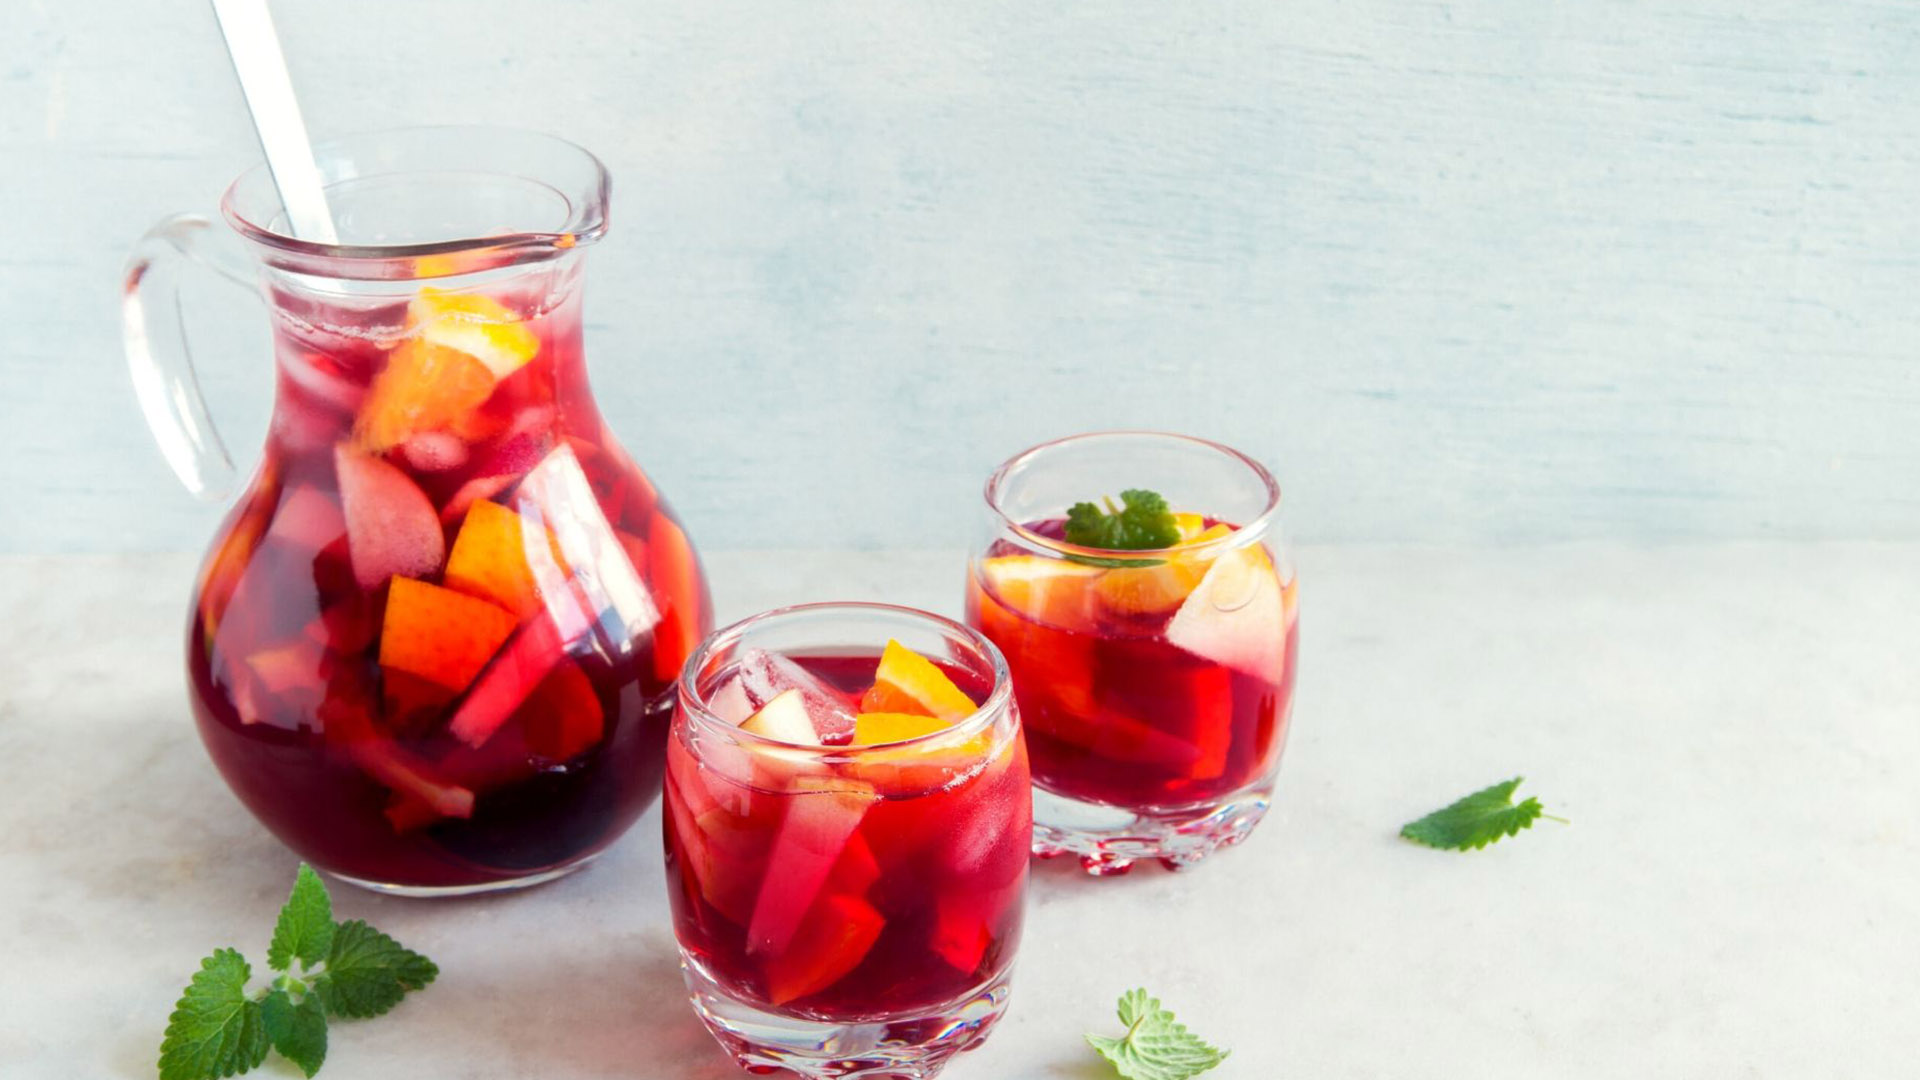 Image of Sangria